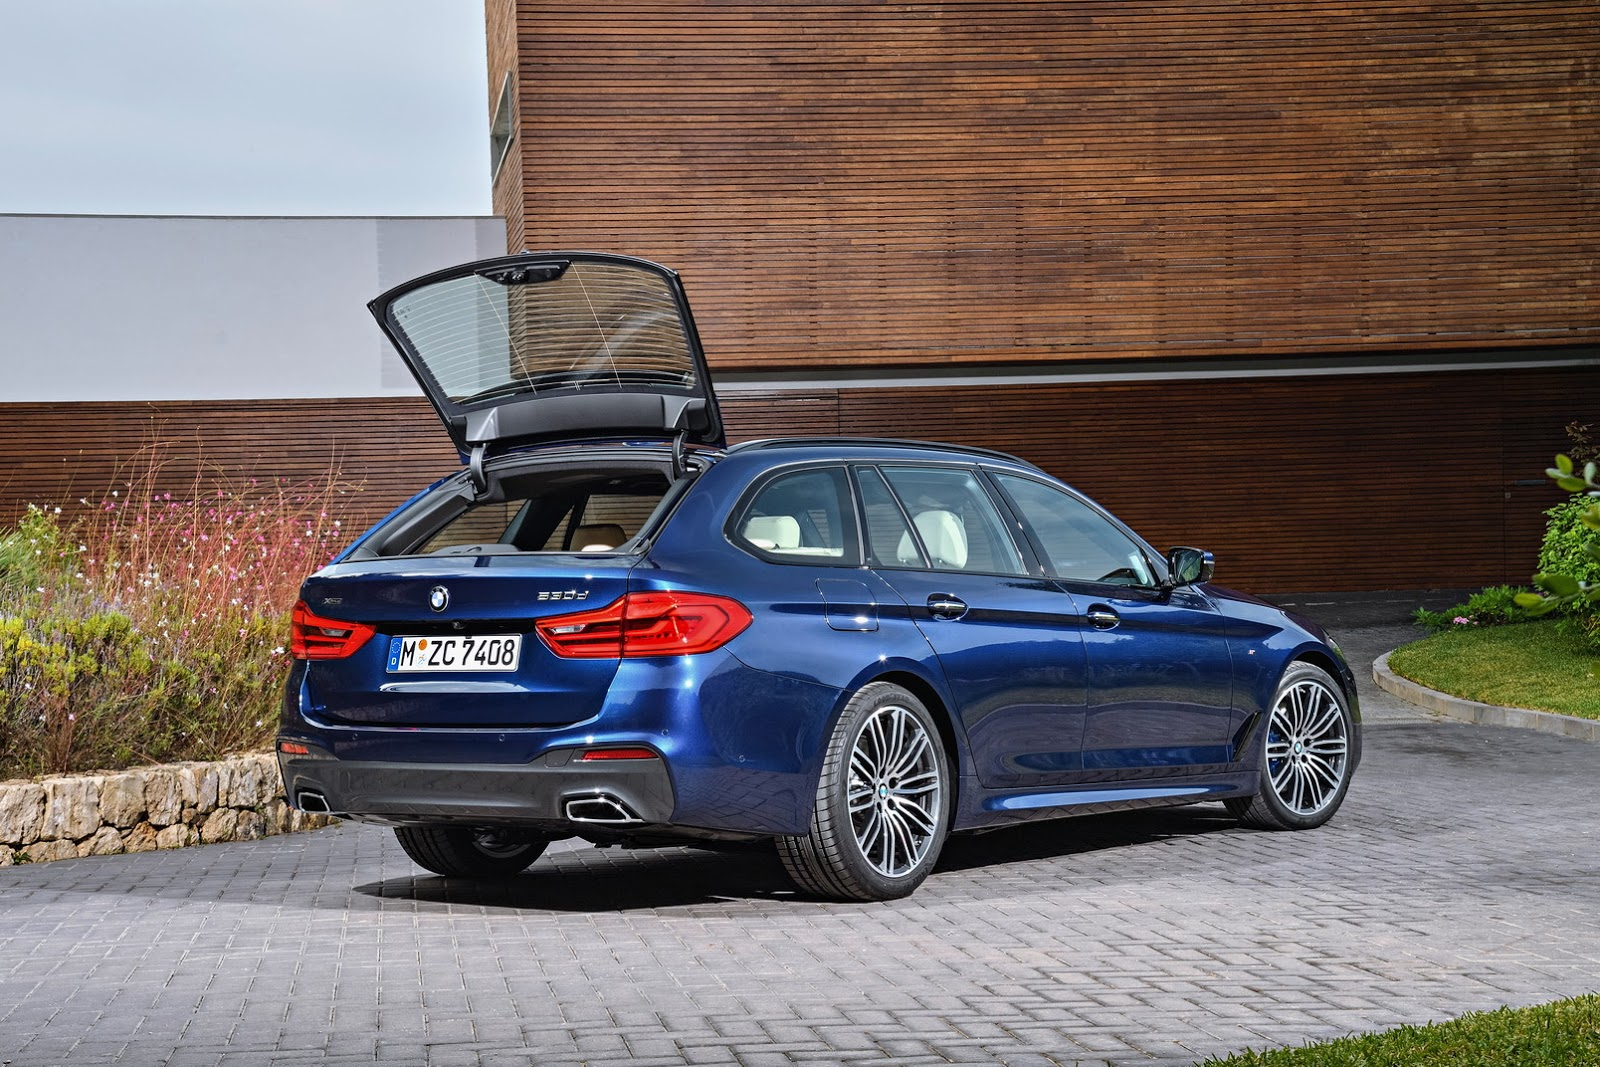 2017 bmw 5 series touring g31 launch films are about wagon lifestyle autoevolution. Black Bedroom Furniture Sets. Home Design Ideas